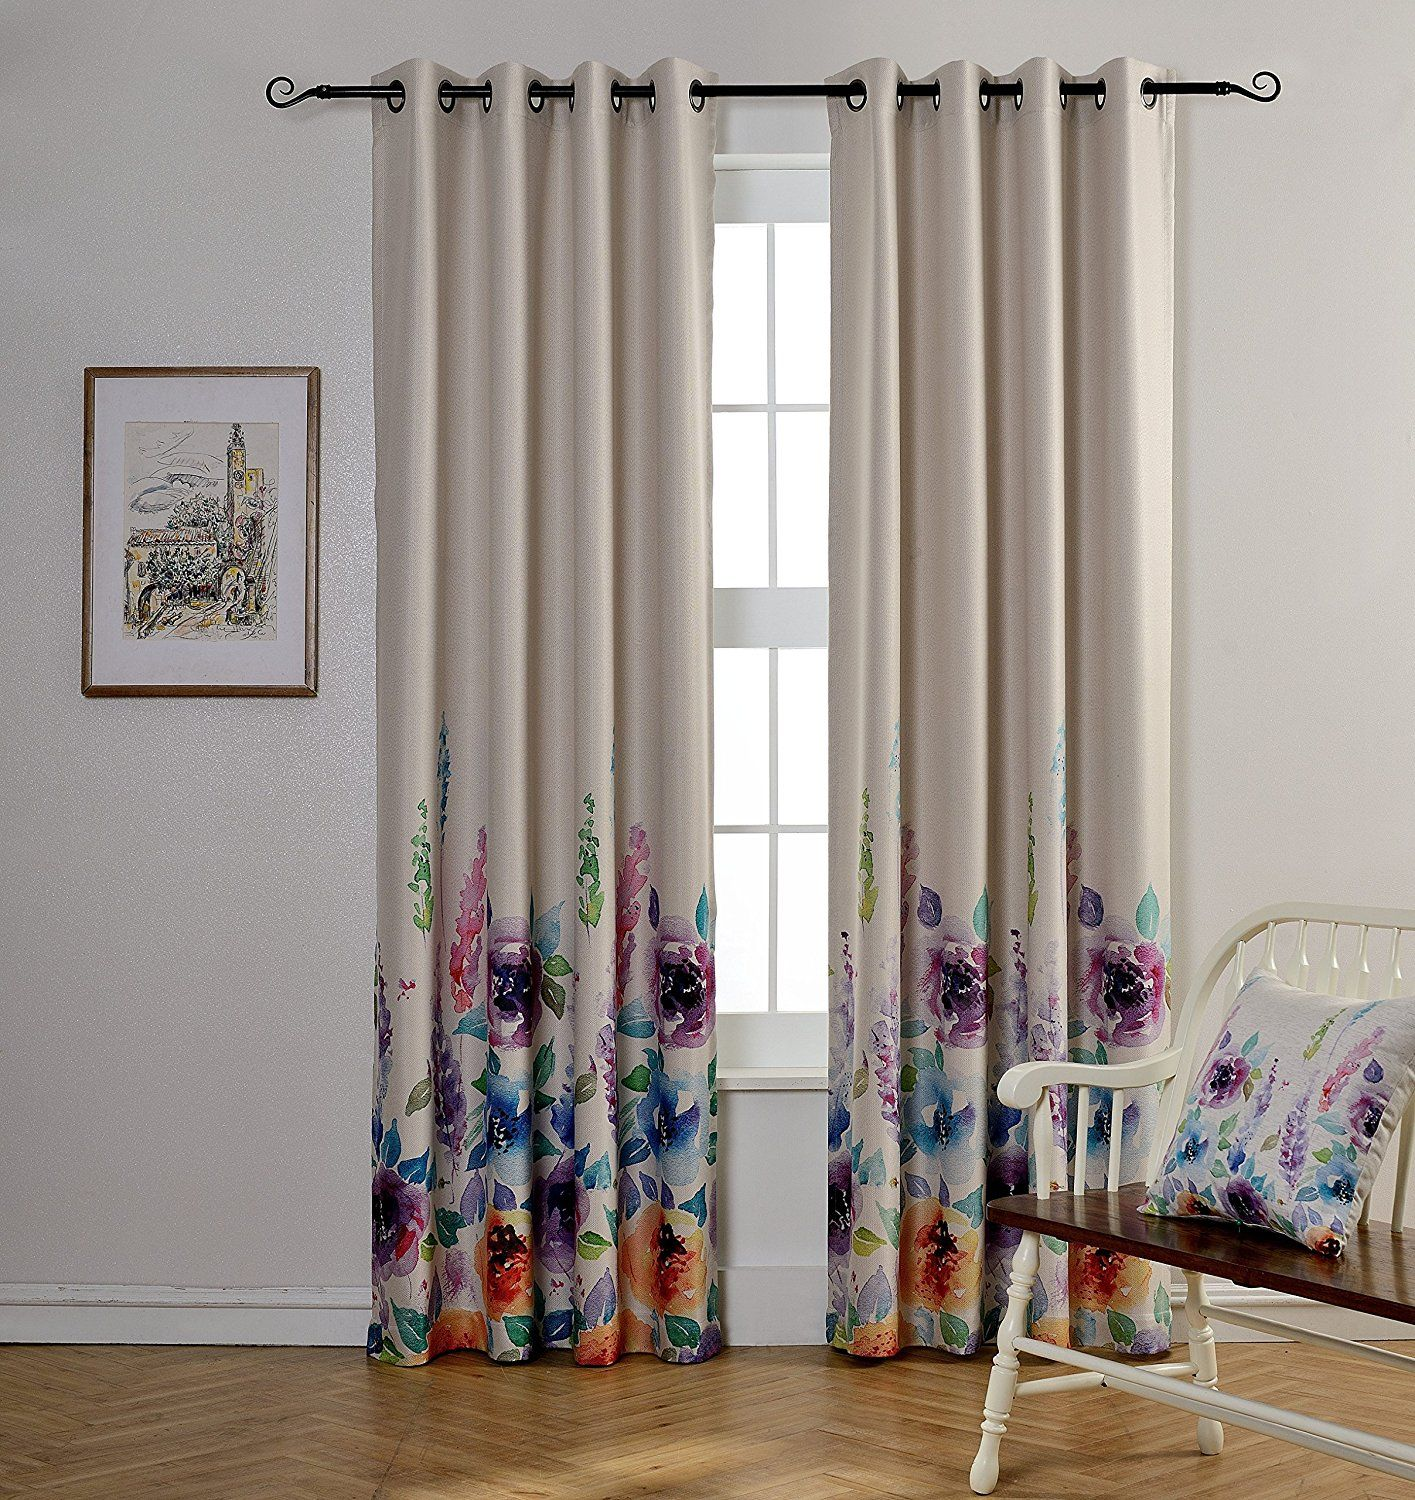 what thermalurtains insulated size design for sensational com nicetown curtains of worth amazon black curtain it images large thermal solidl good grommet pitch are